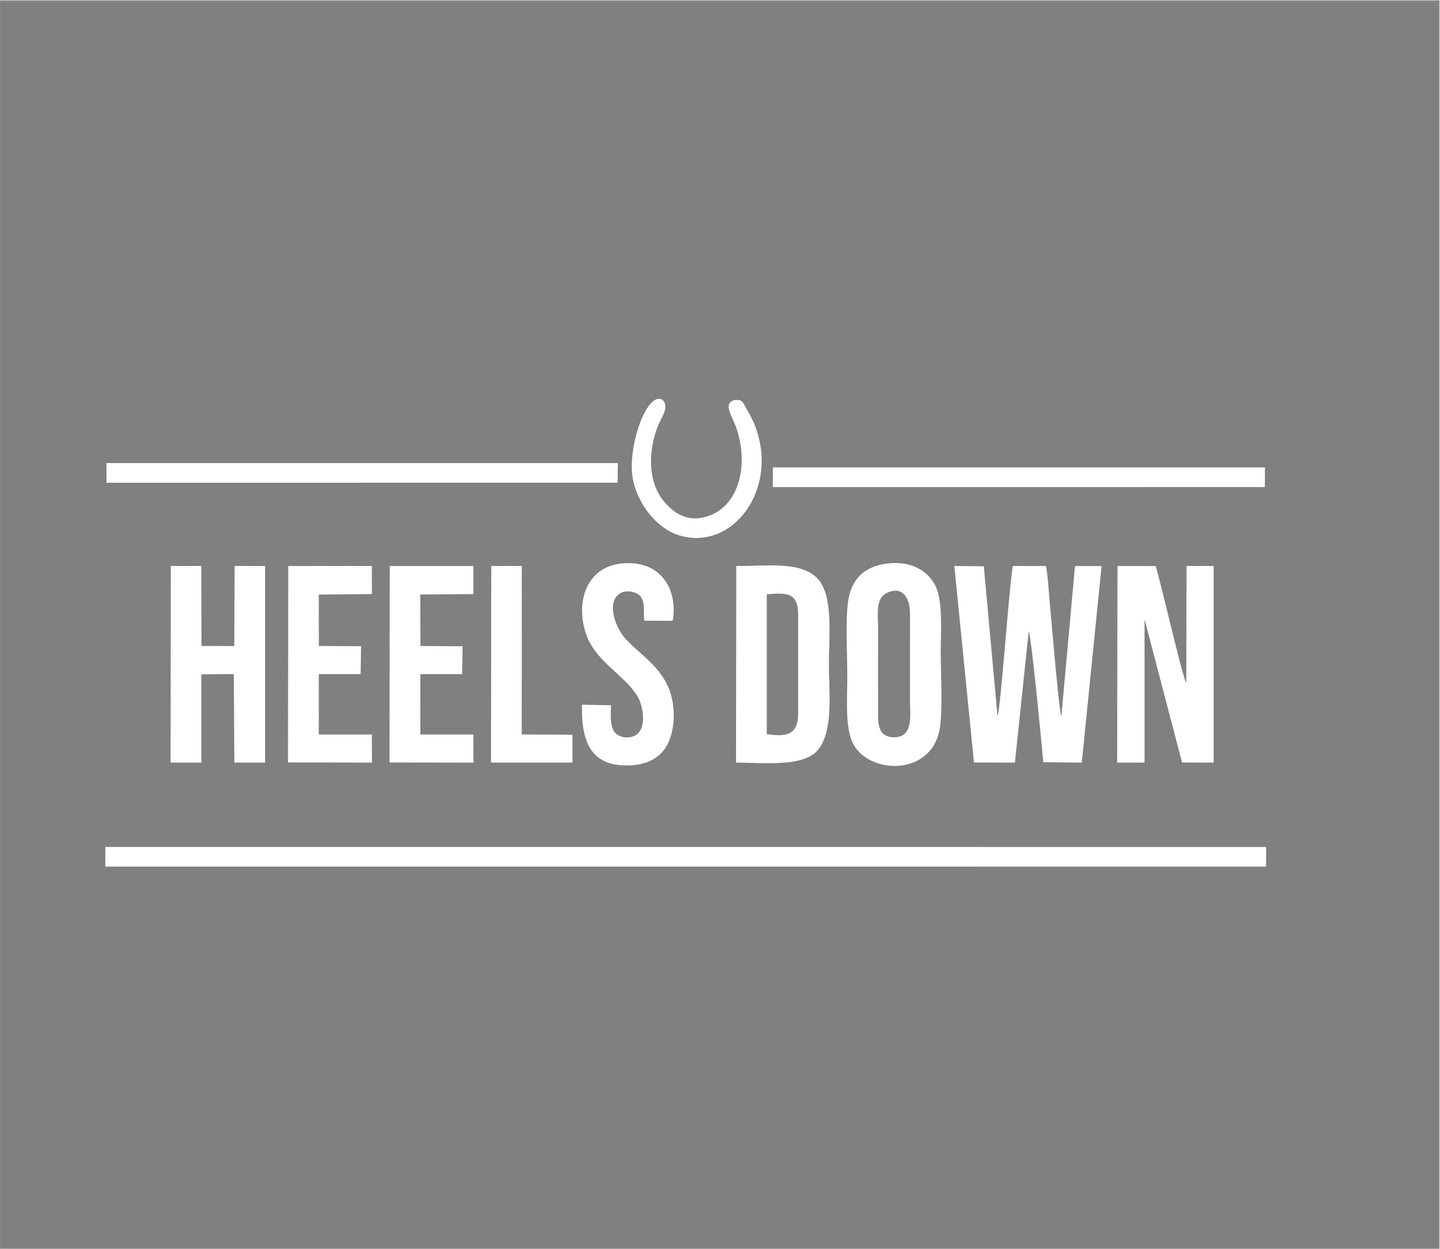 Heels Down Horse Riding Vinyl Car Decal- Window Vinyl Decal- Trailer Decal